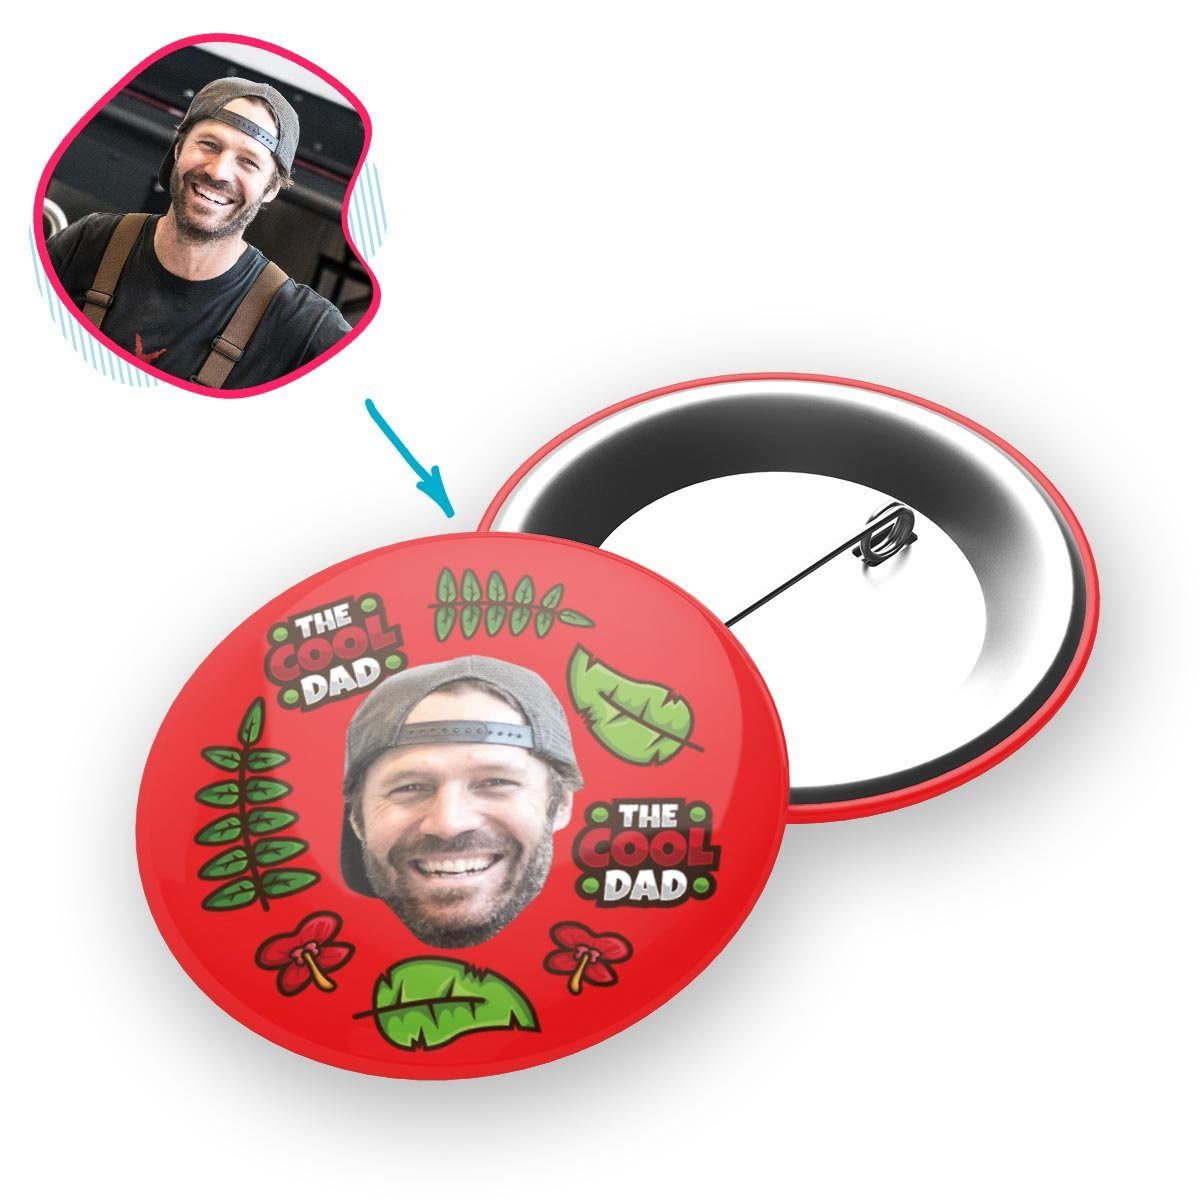 The Cool Dad Personalized Pin Button